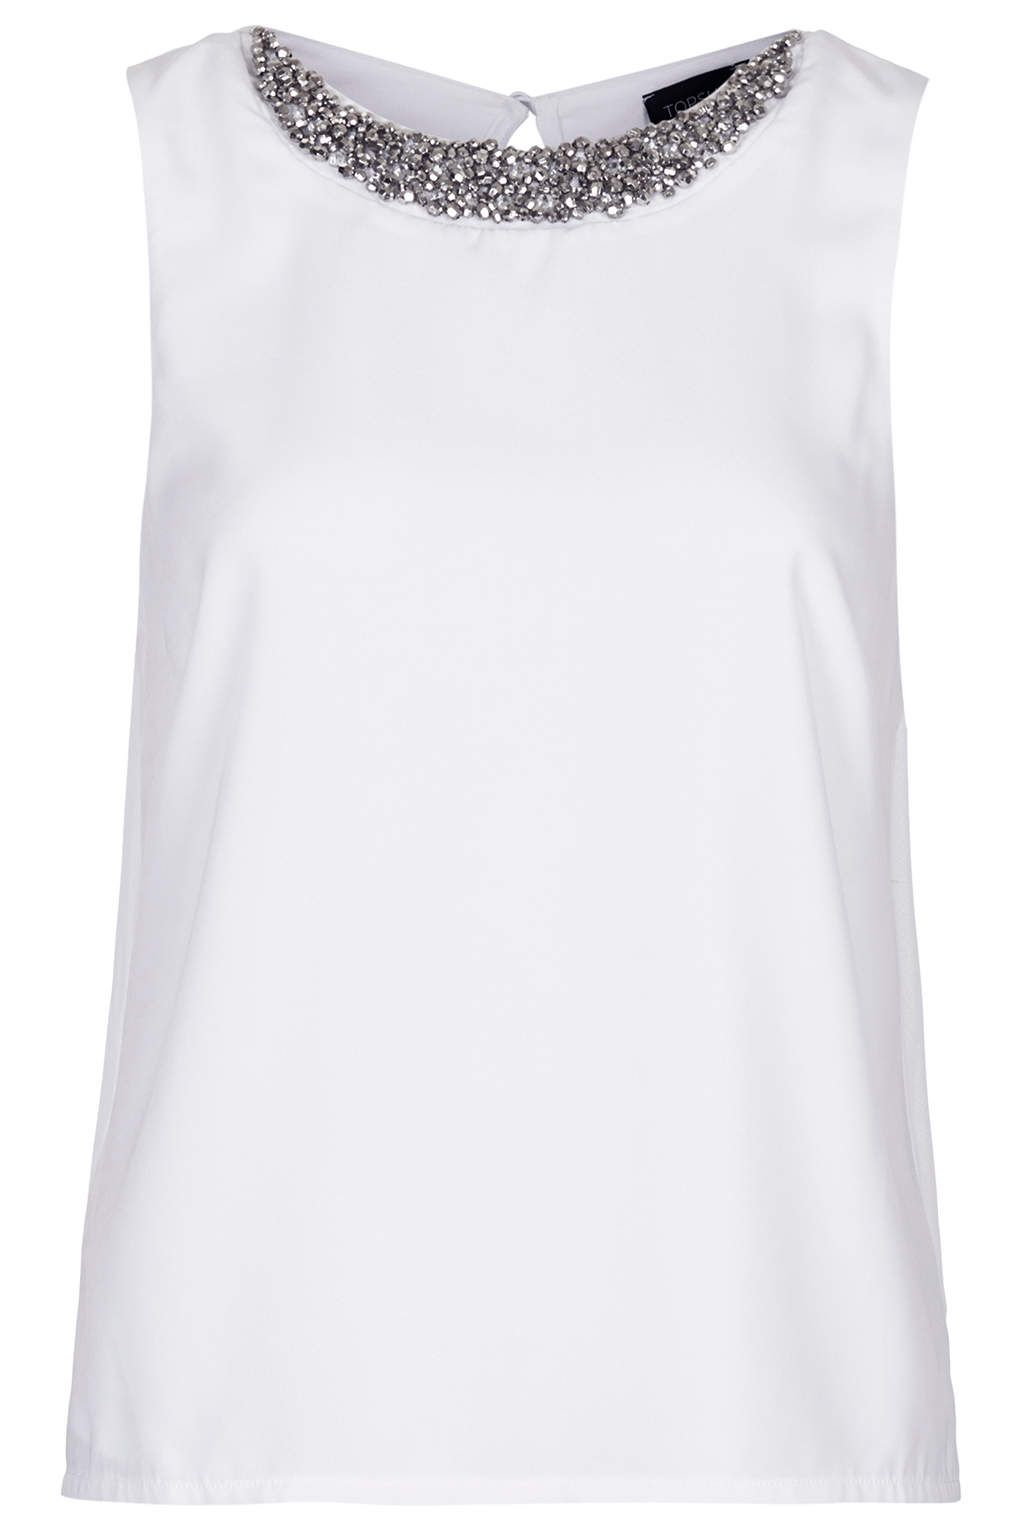 Necklace Shell Top - Tops - Clothing - Topshop